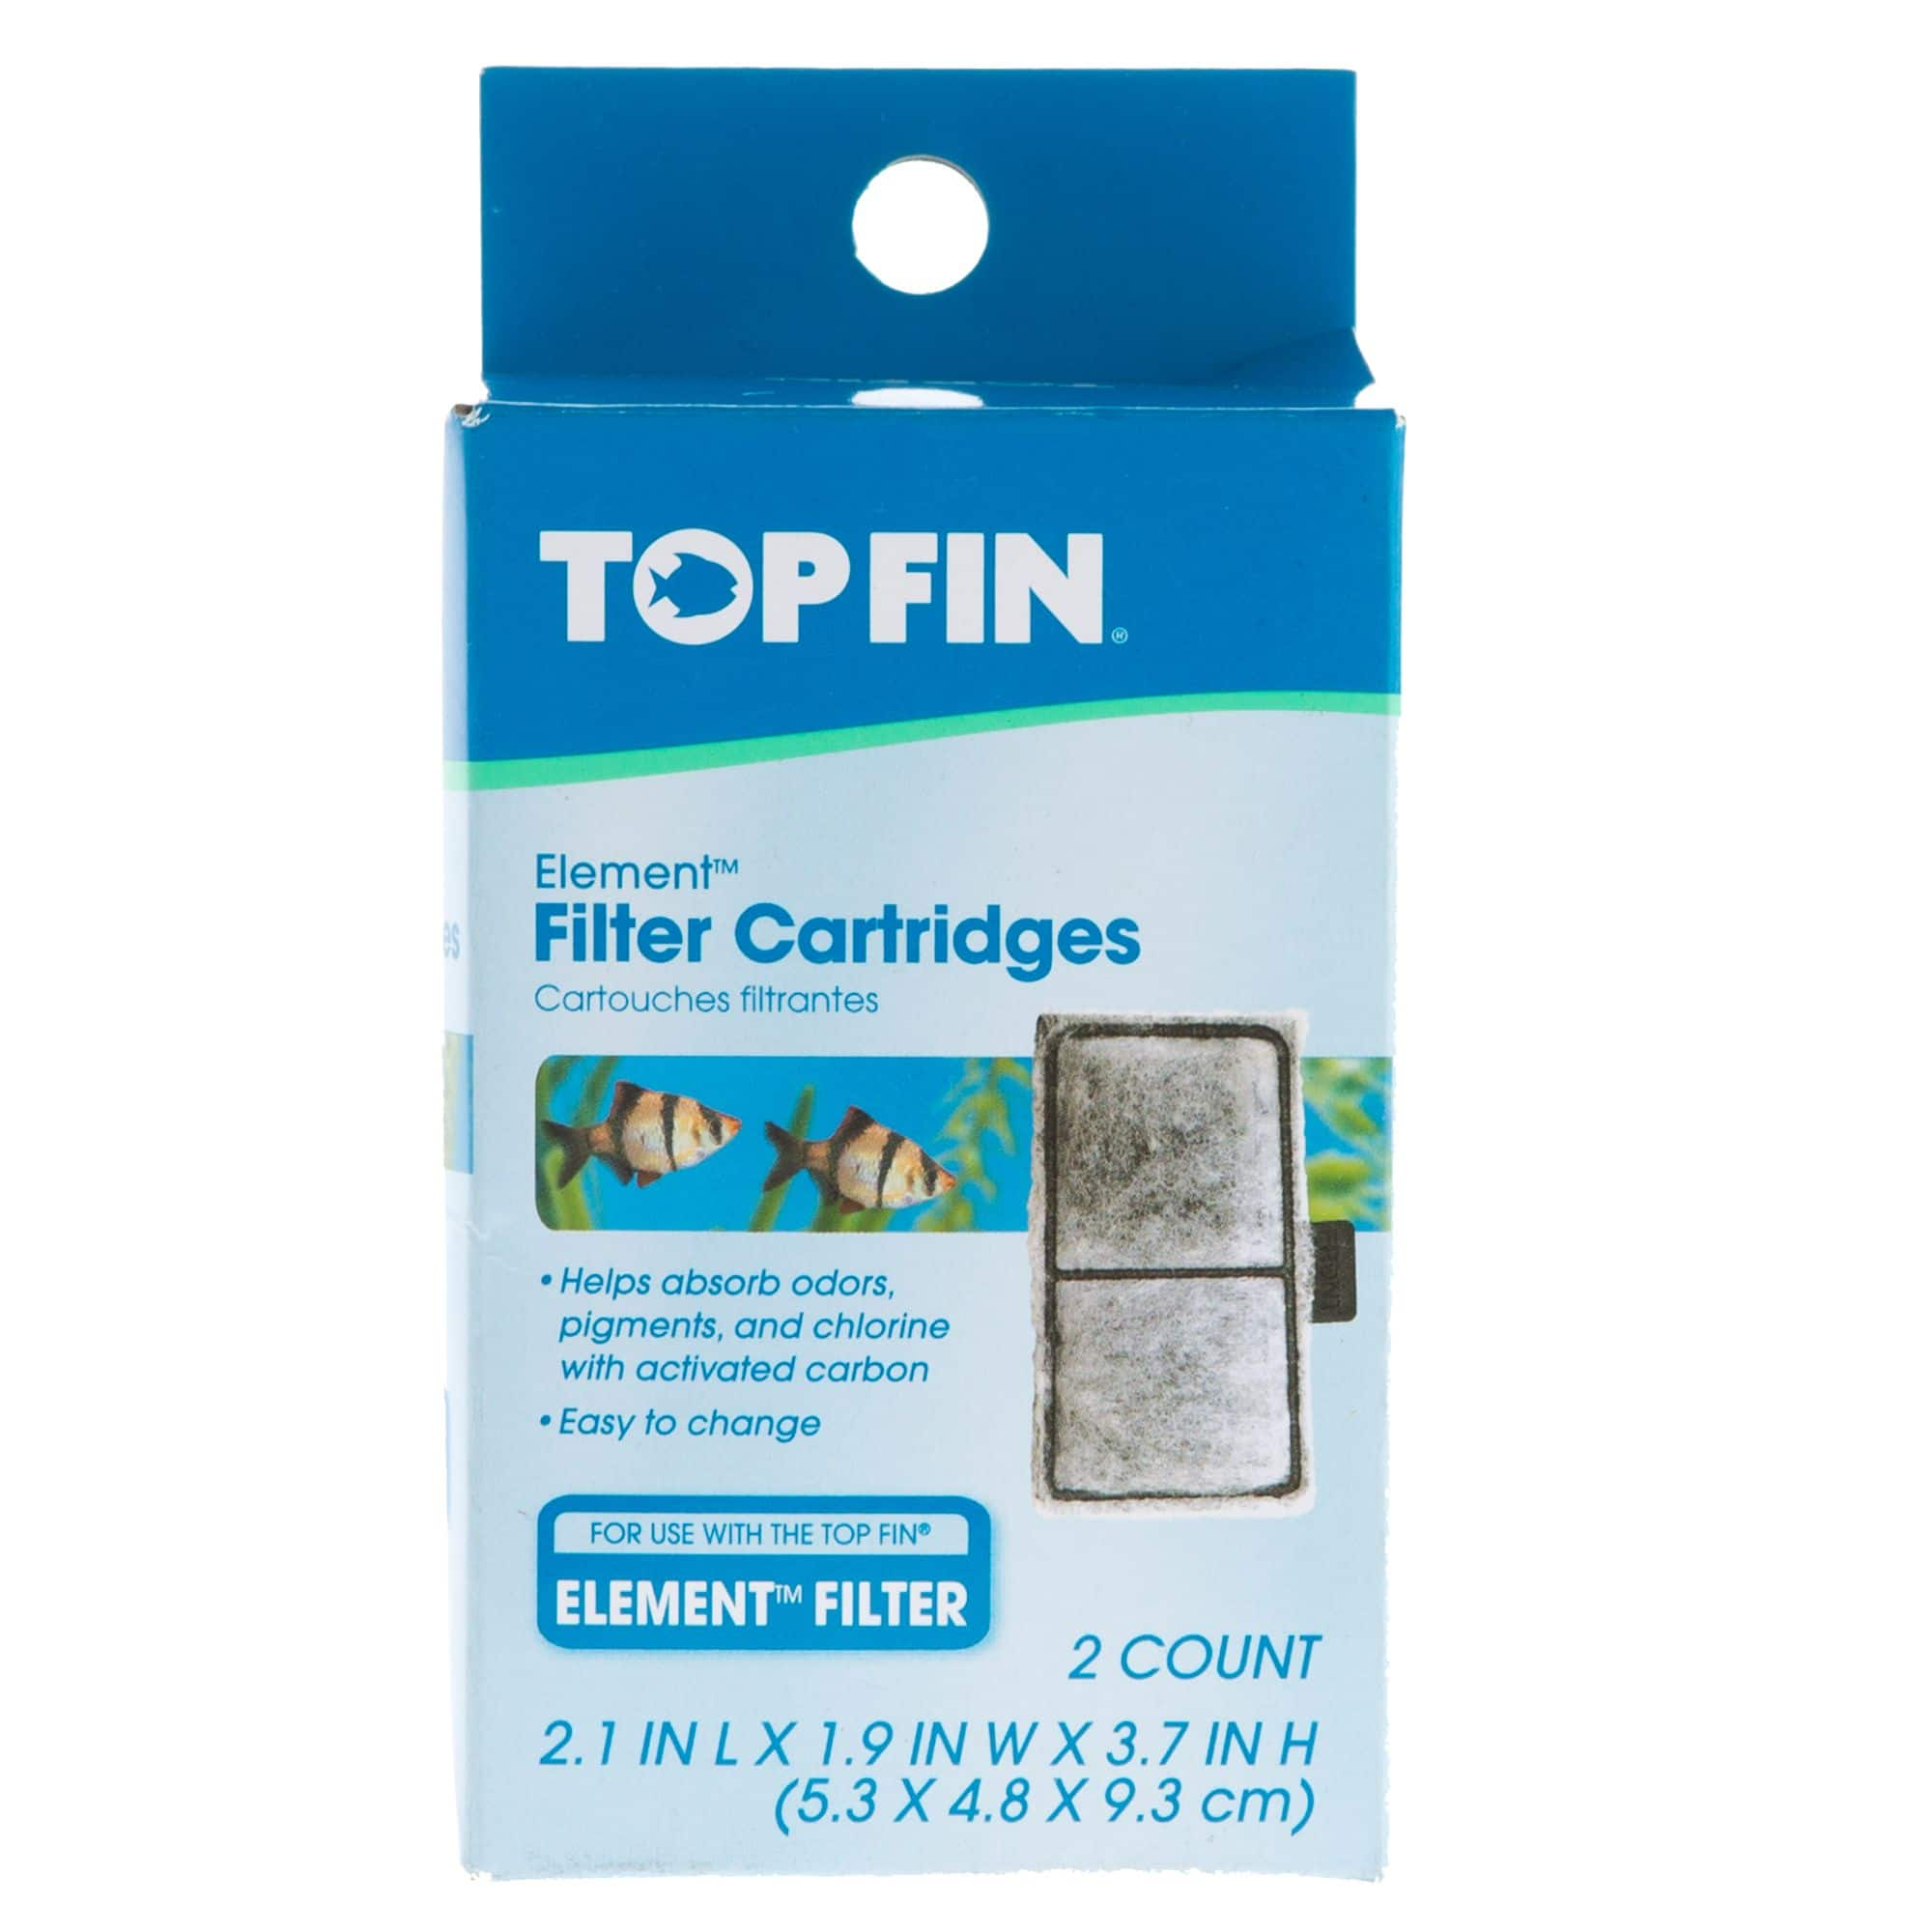 Petsmart BOGO 1/2 off Filter media instore